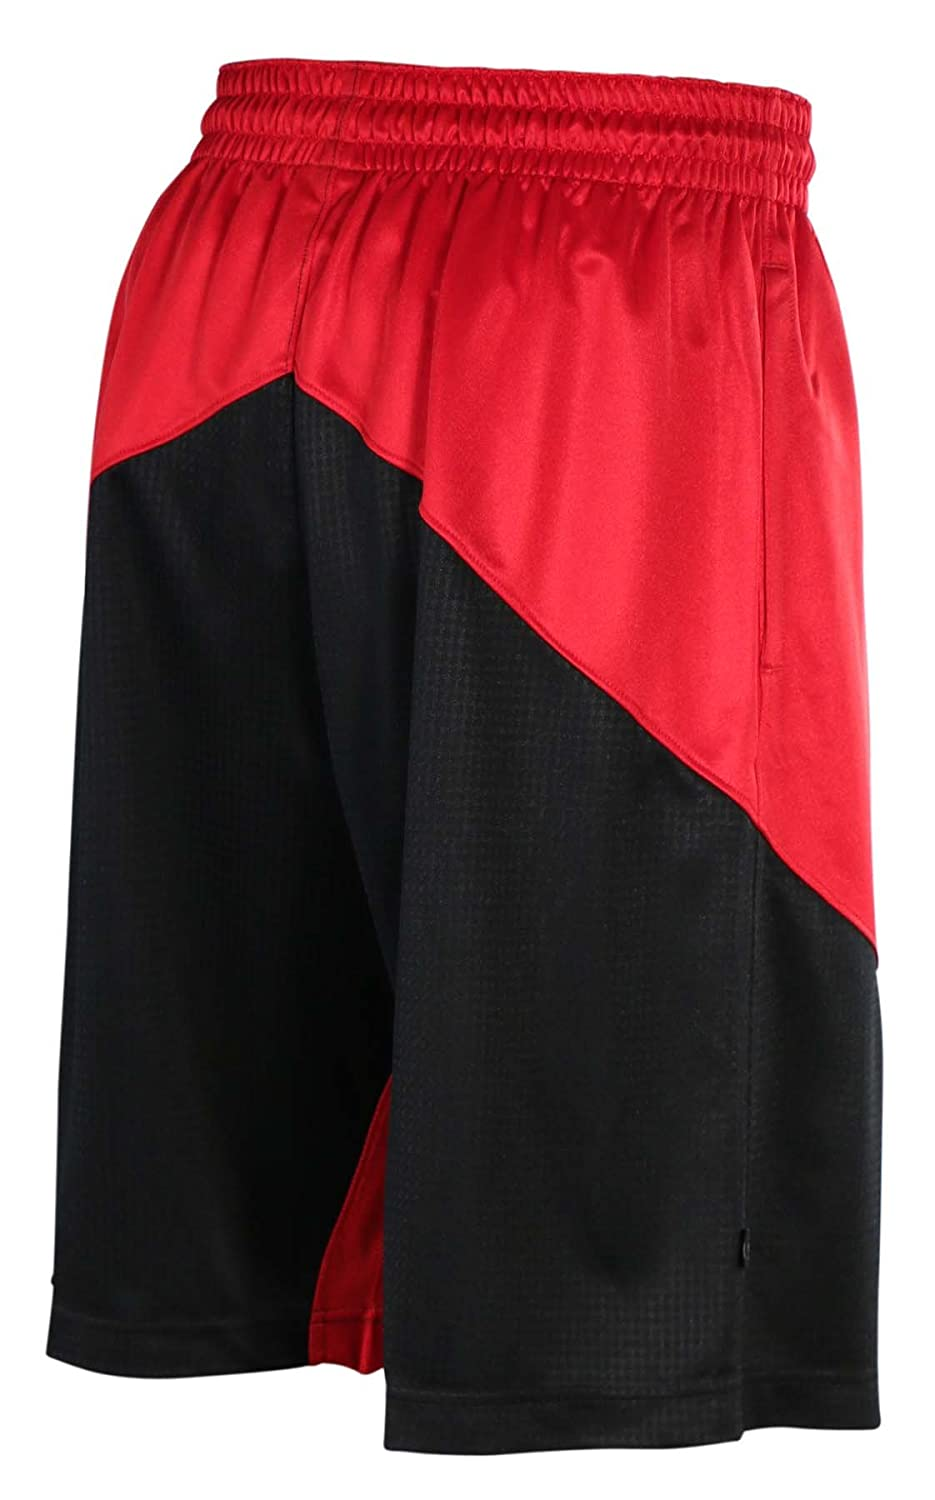 b47af48198f8 Amazon.com   Jordan Melo Triangle And Jumpman Men s Basketball Shorts Size  Small   Sports   Outdoors